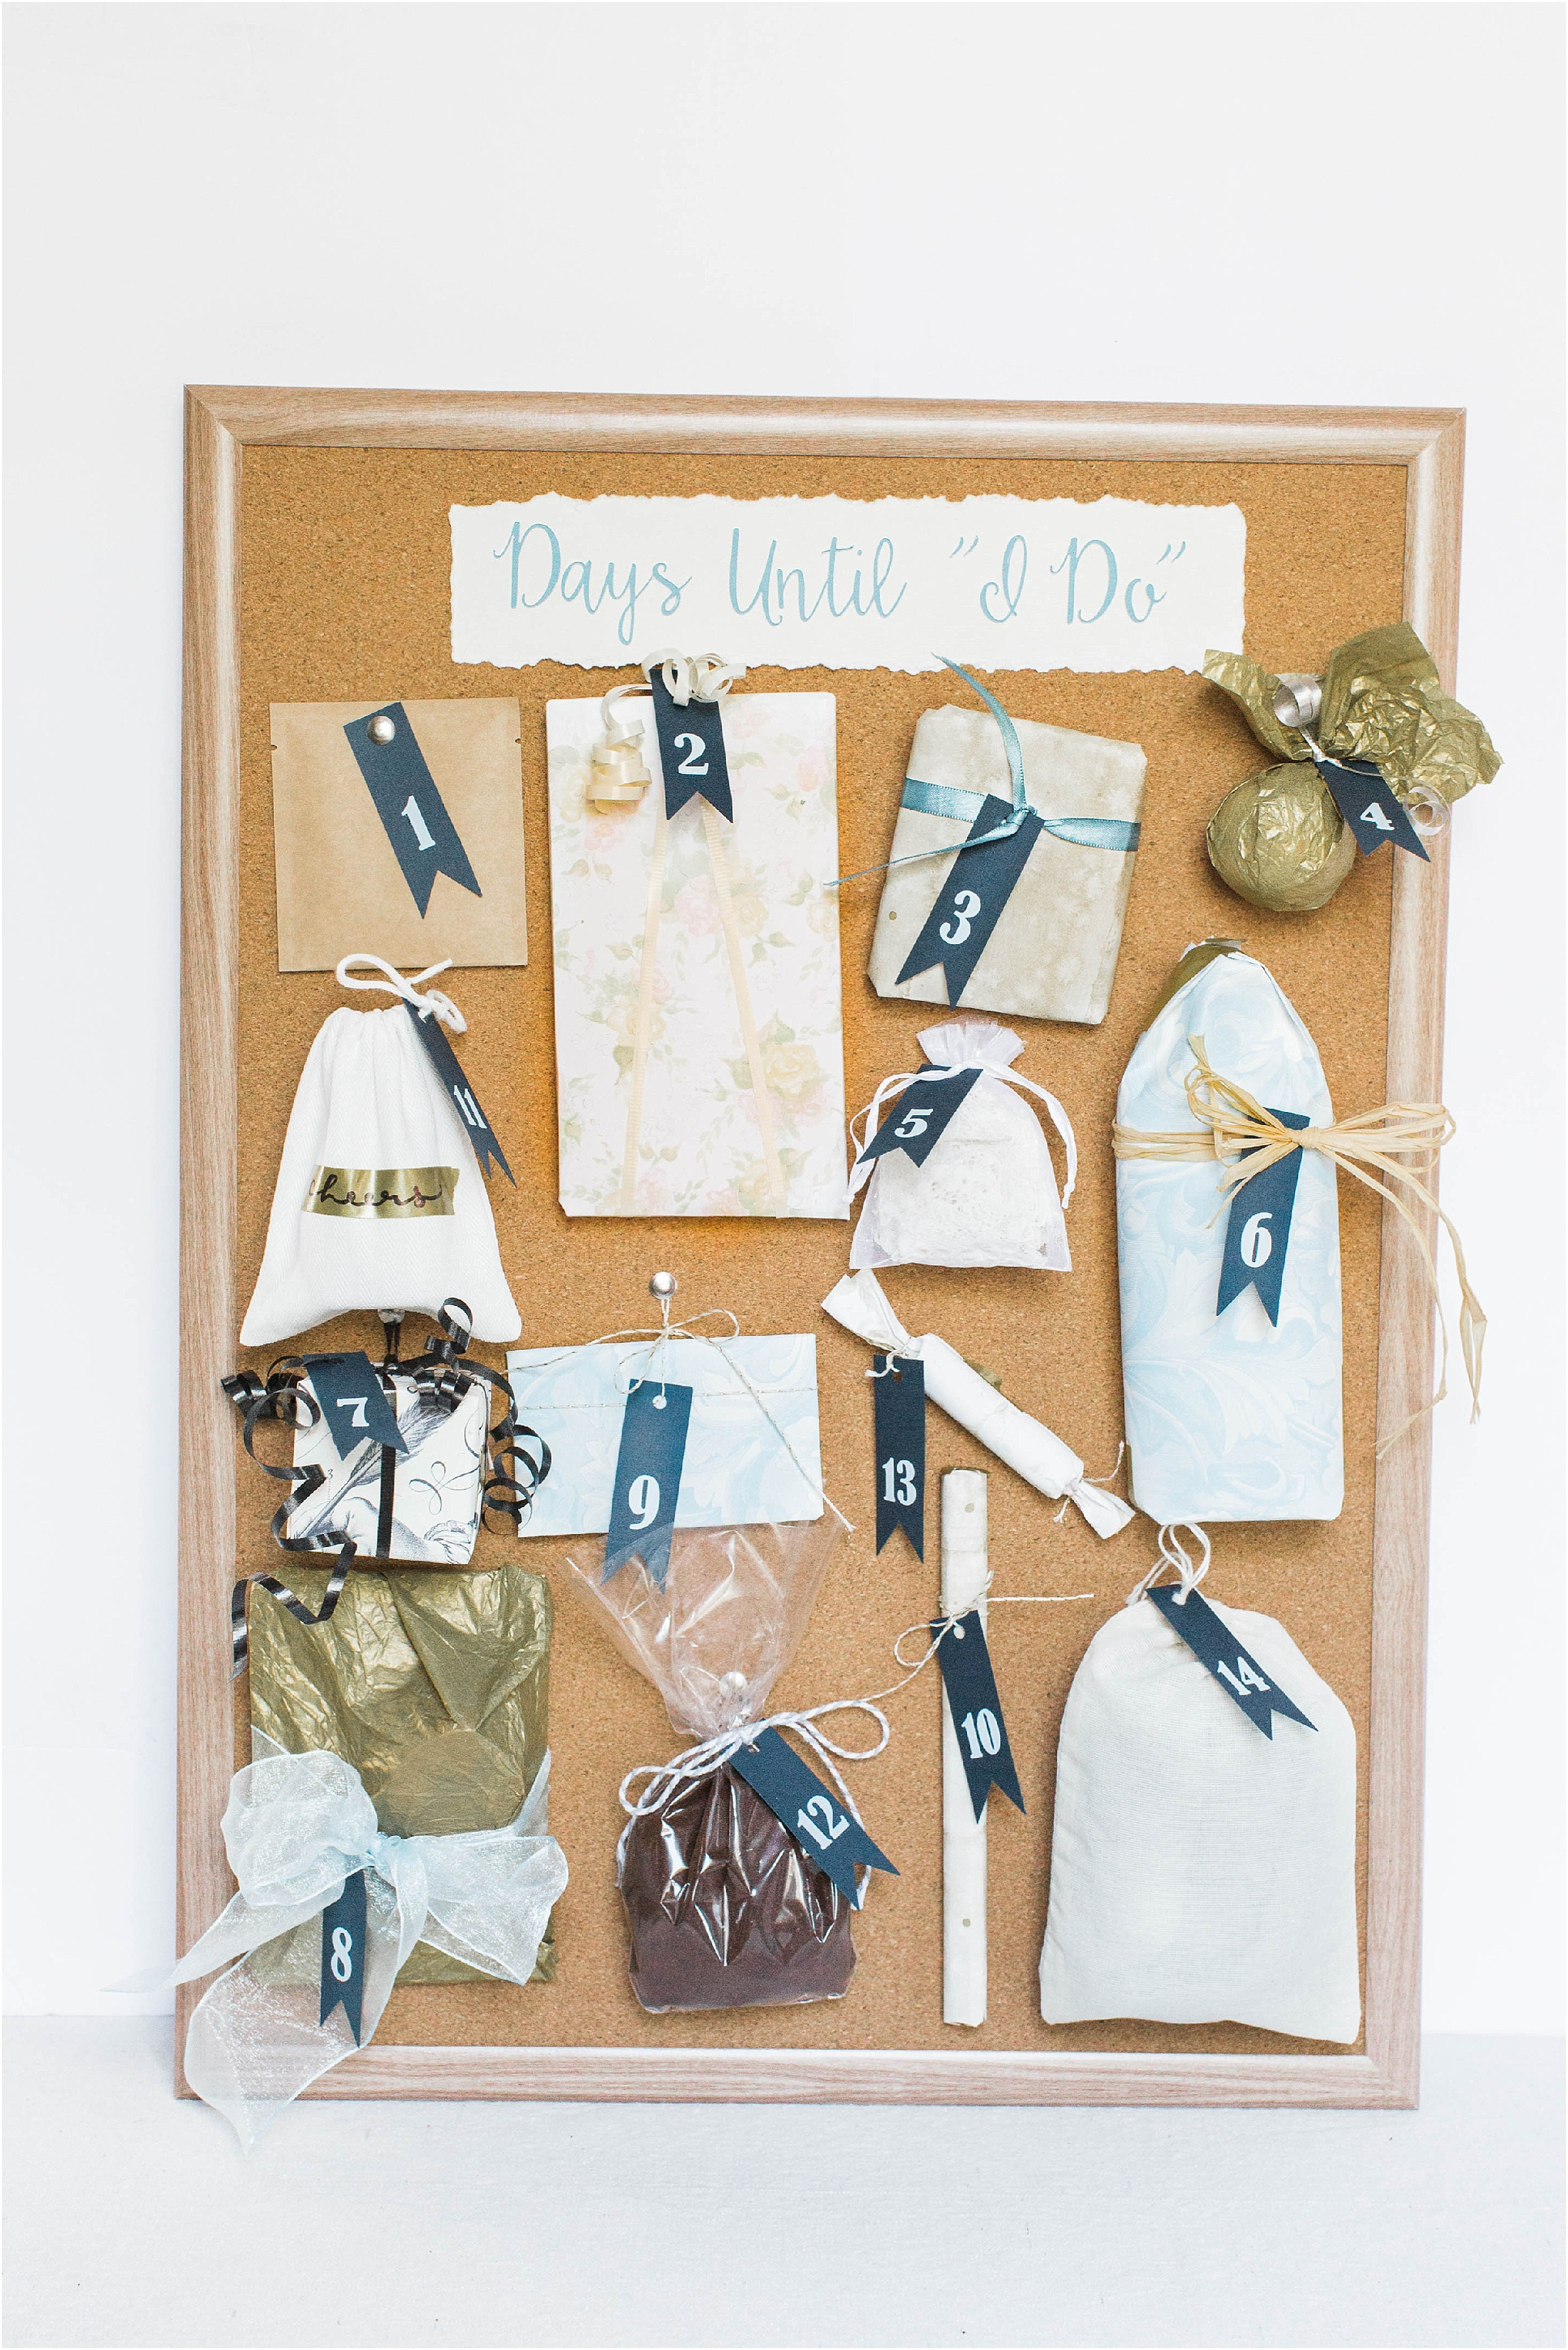 Best ideas about Wedding Gift DIY . Save or Pin How to DIY a Wedding Advent Calendar Now.